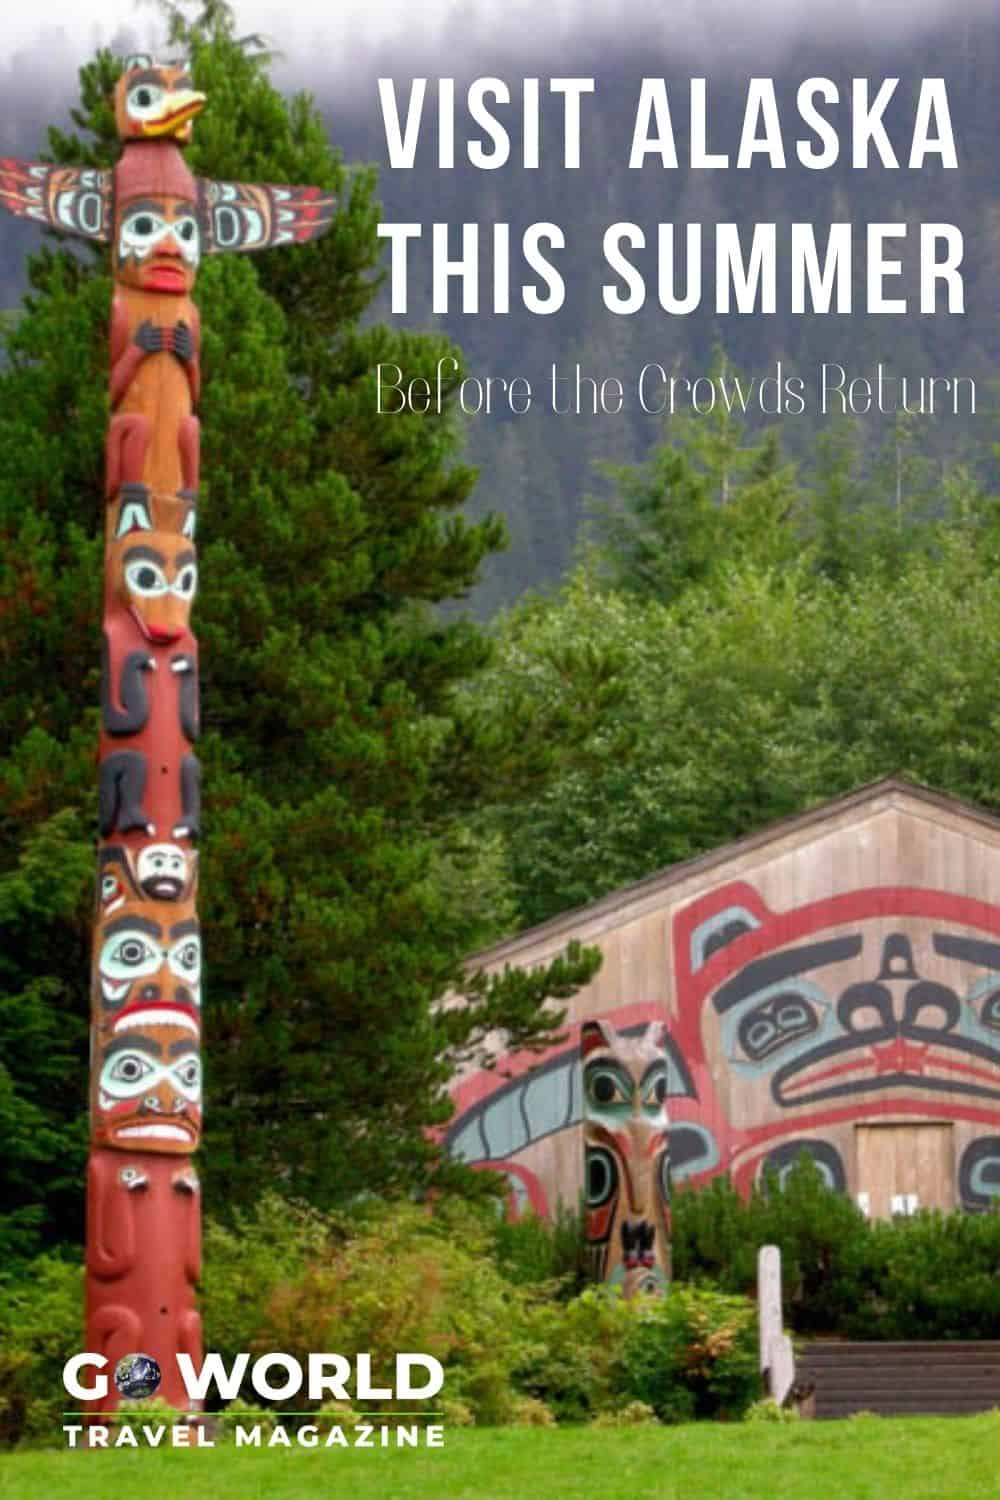 Summer in Alaska is beautiful & this year there will be far fewer people until the cruise ships start again. Now's the time to go to Alaska!